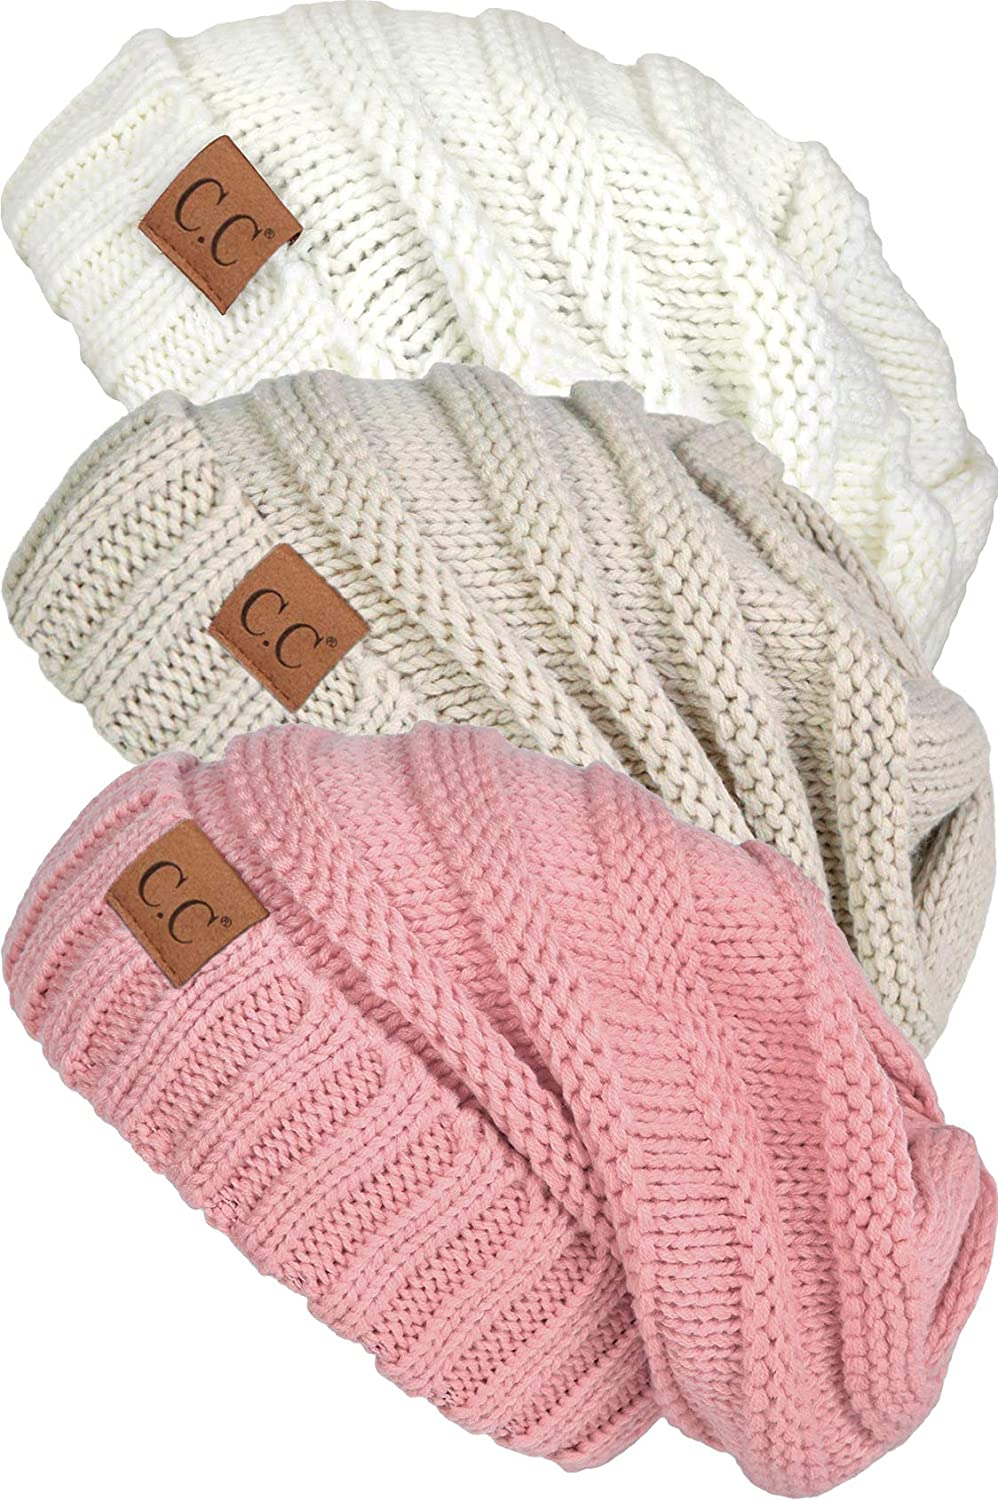 Funky Junque Trendy Warm Oversized Chunky Cable Knit Slouchy Beanie Bundles